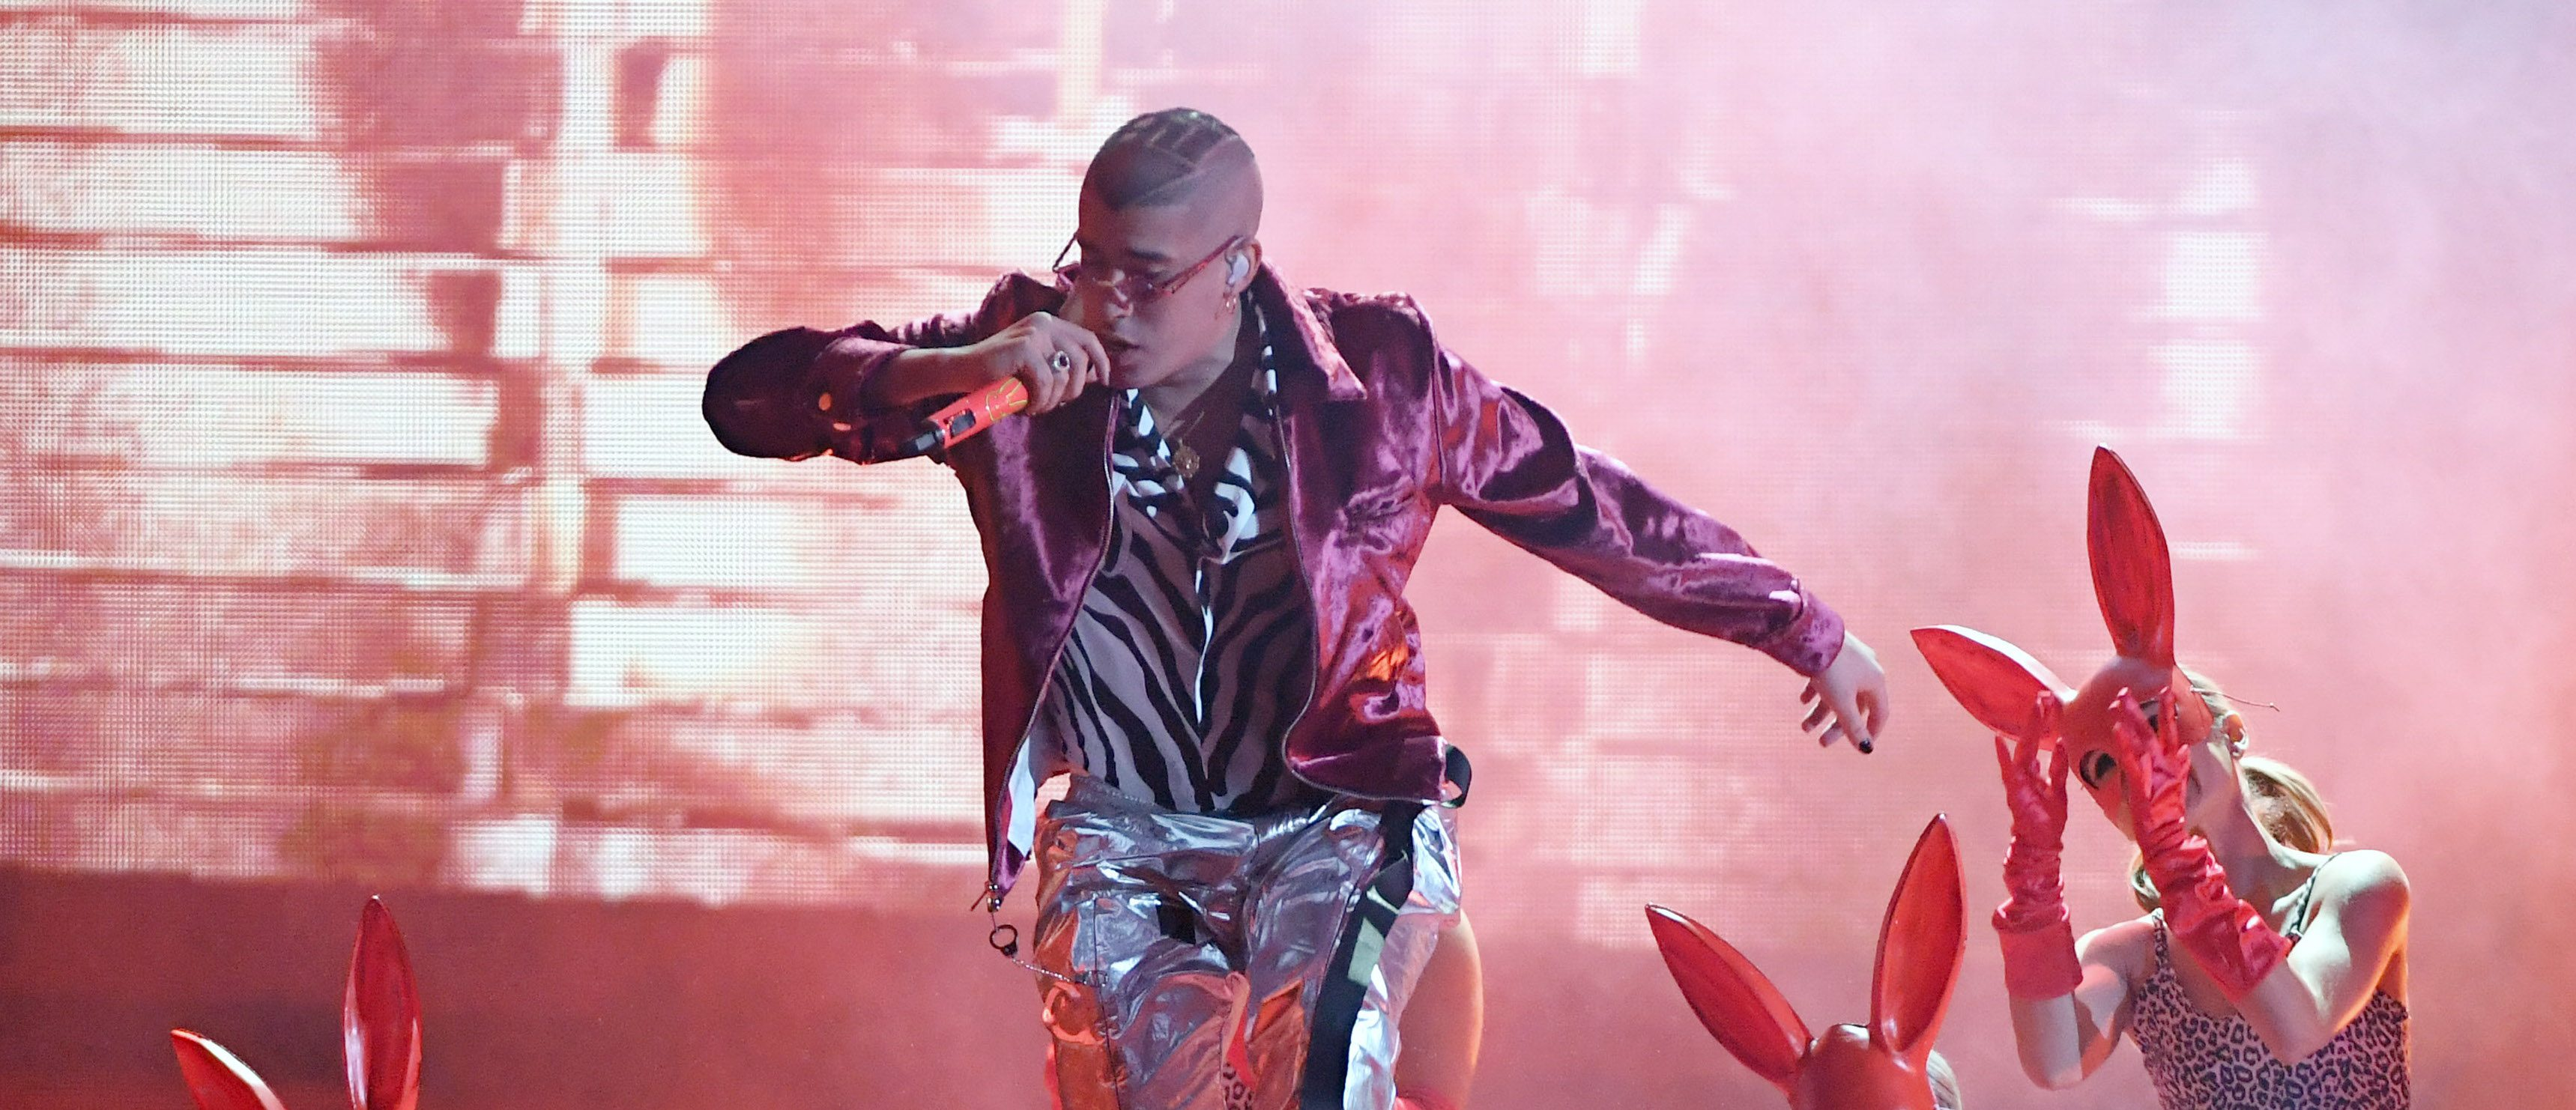 Bad Bunny Gifts the World 1 Month of Free Spotify Premium